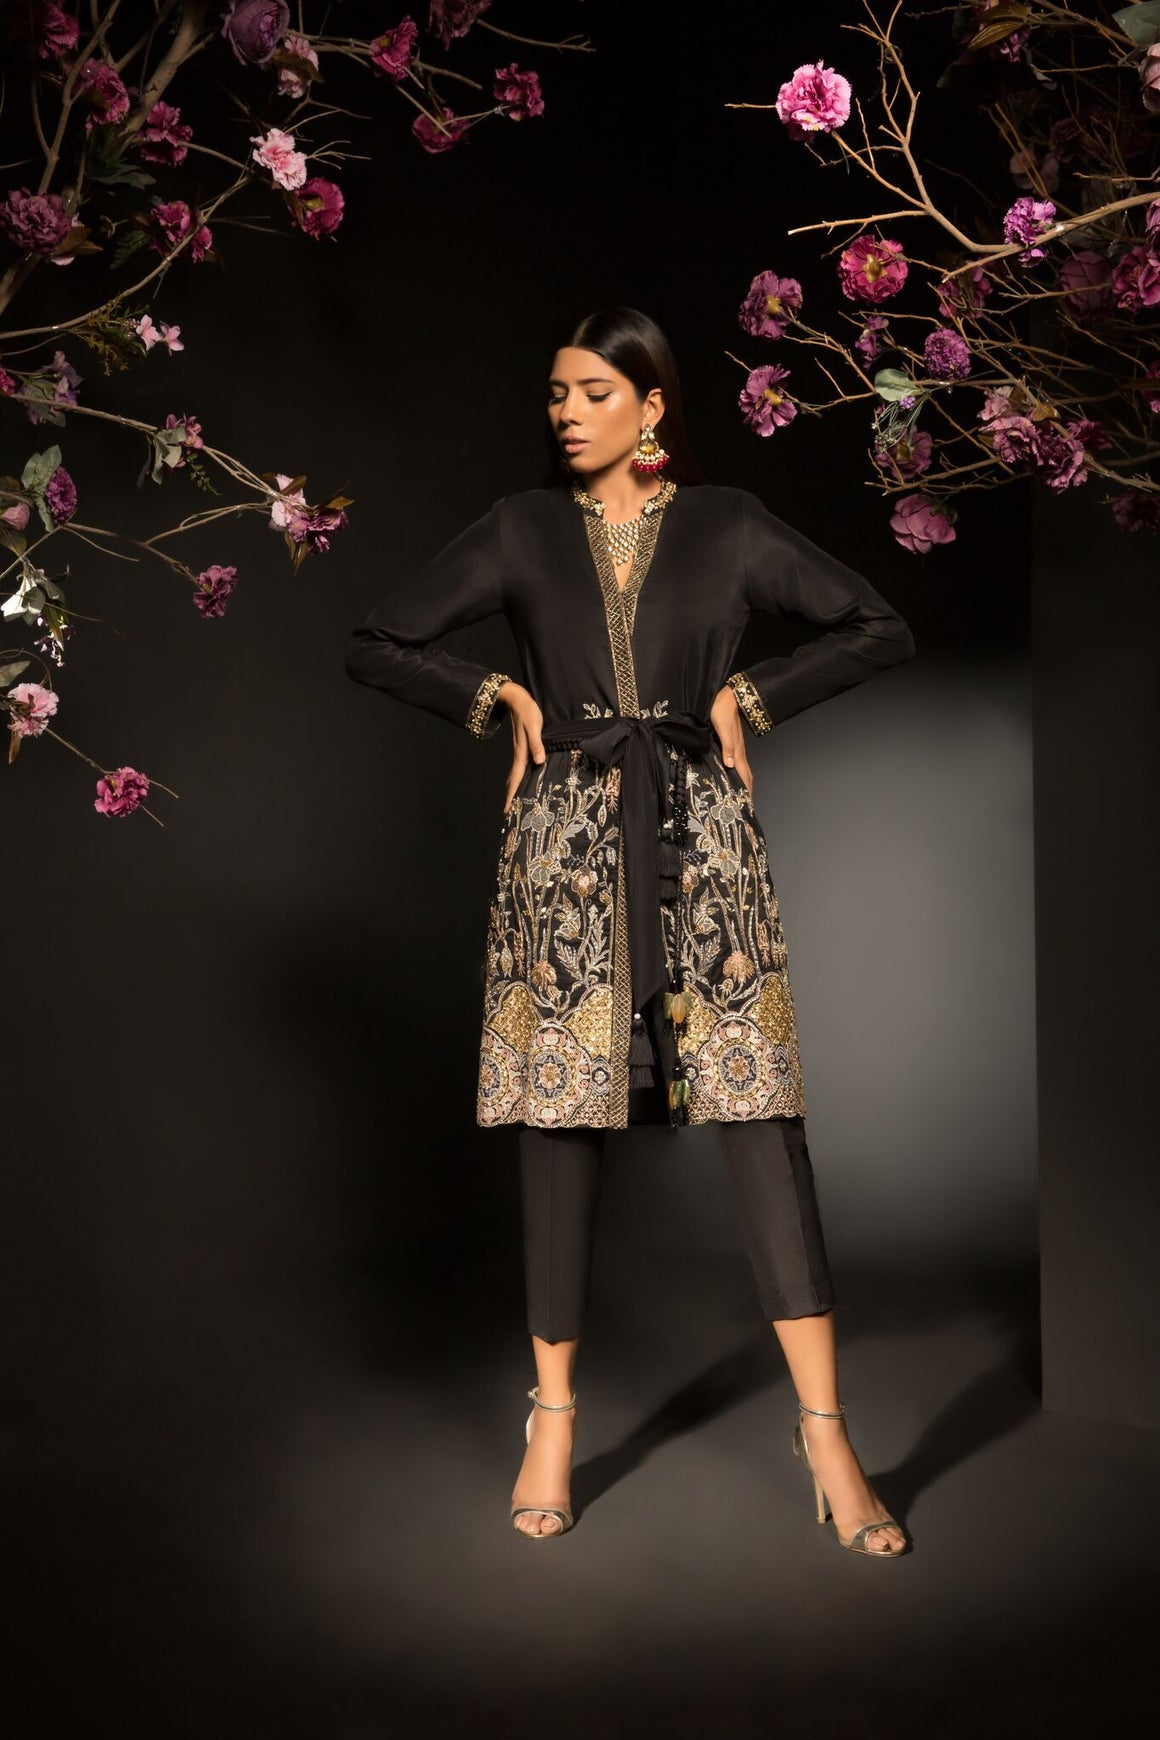 Mahgul - Streamlined Faux Jacket Silhouette Shirt With Pants & Belt